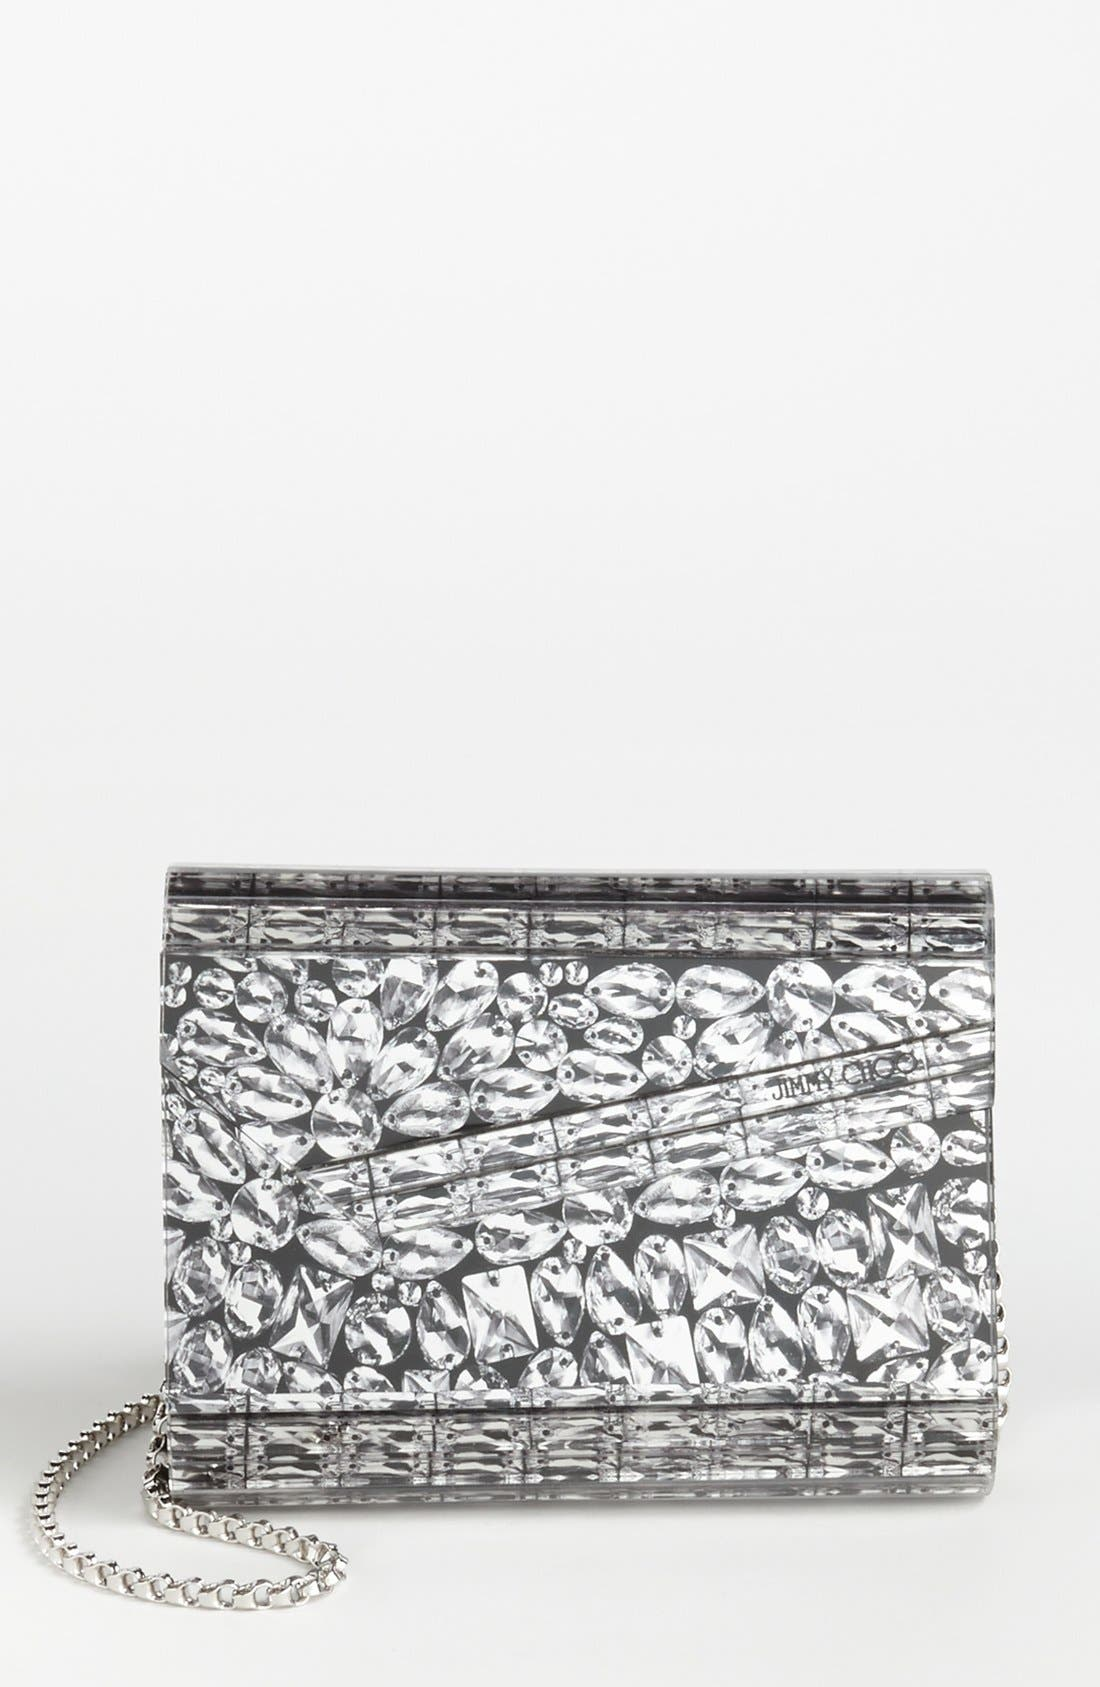 Main Image - Jimmy Choo 'Candy' Clutch, Small